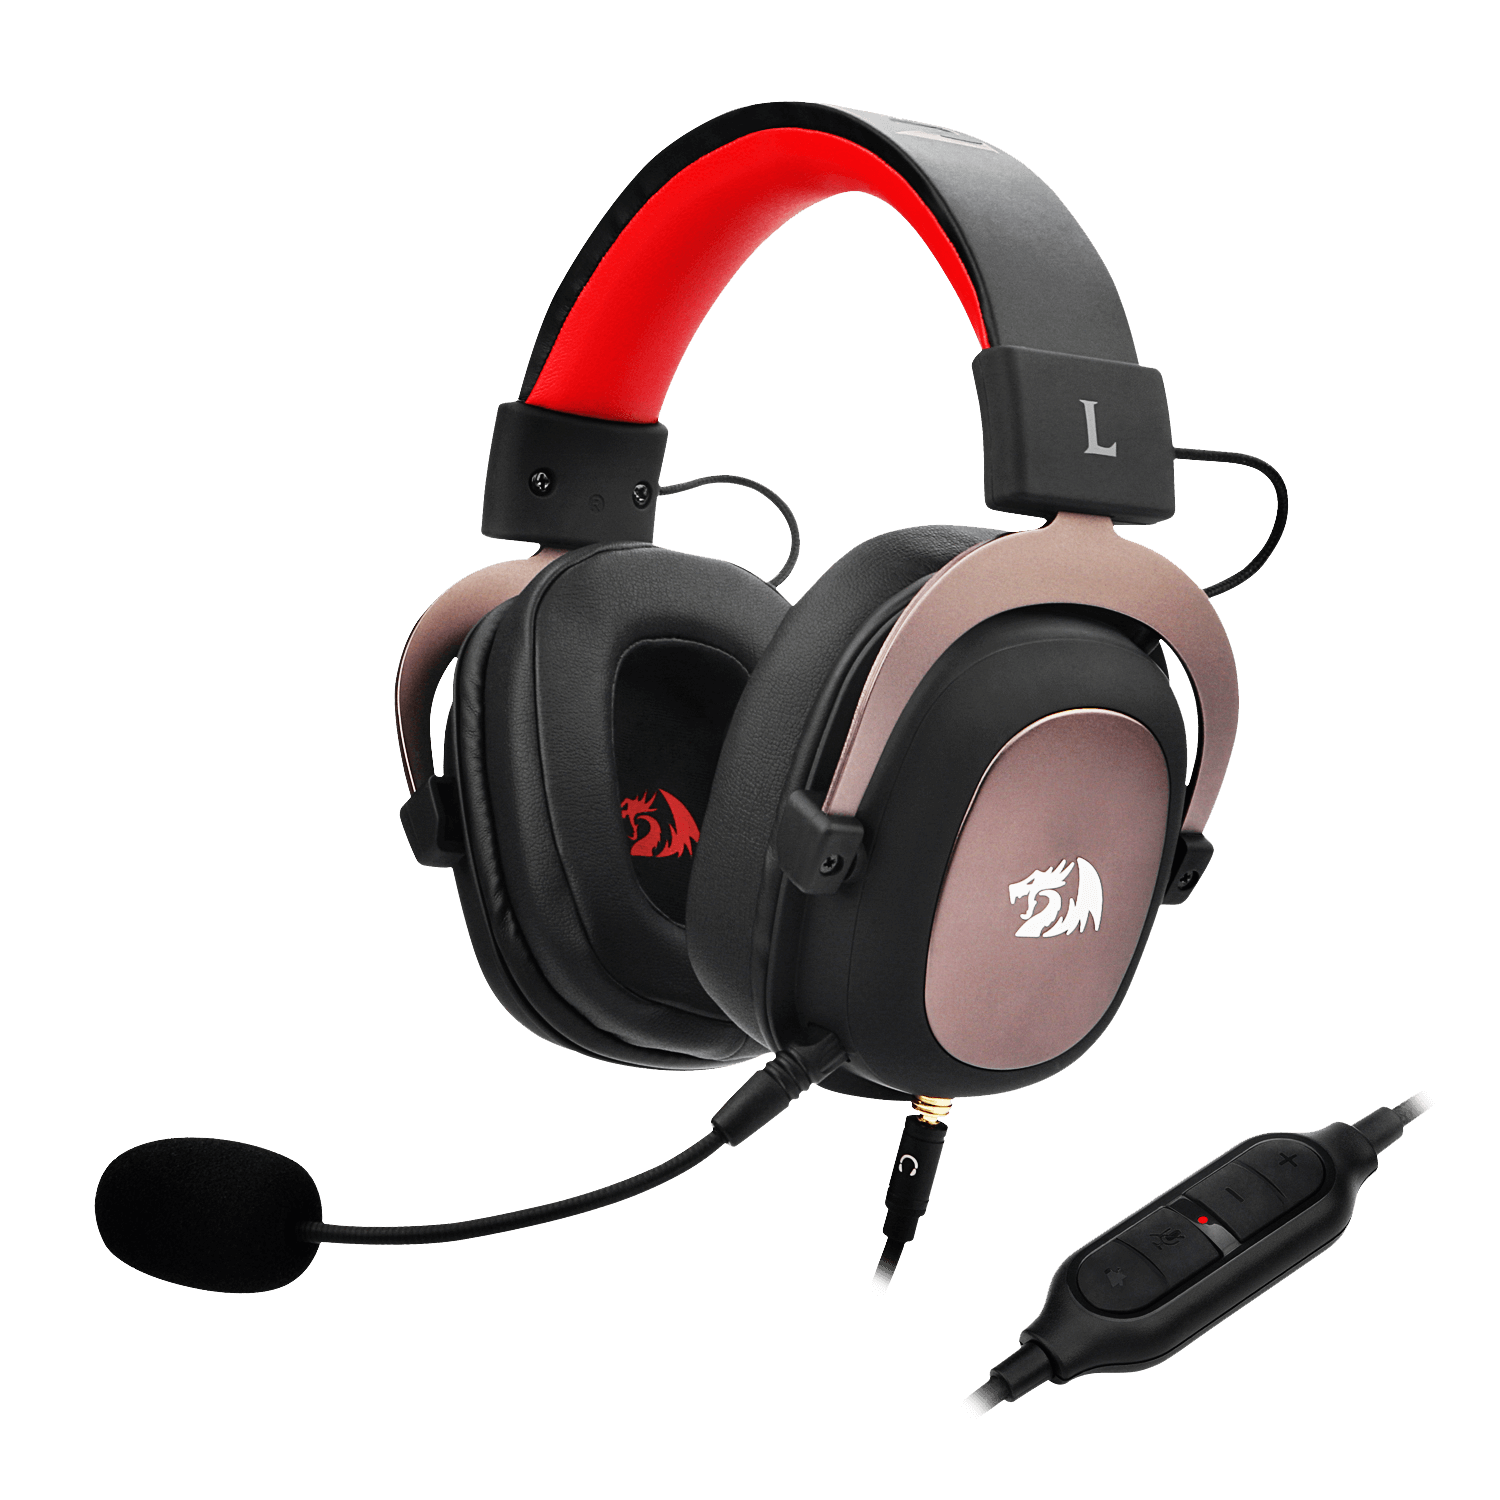 Redragon-H510-Headphone-1